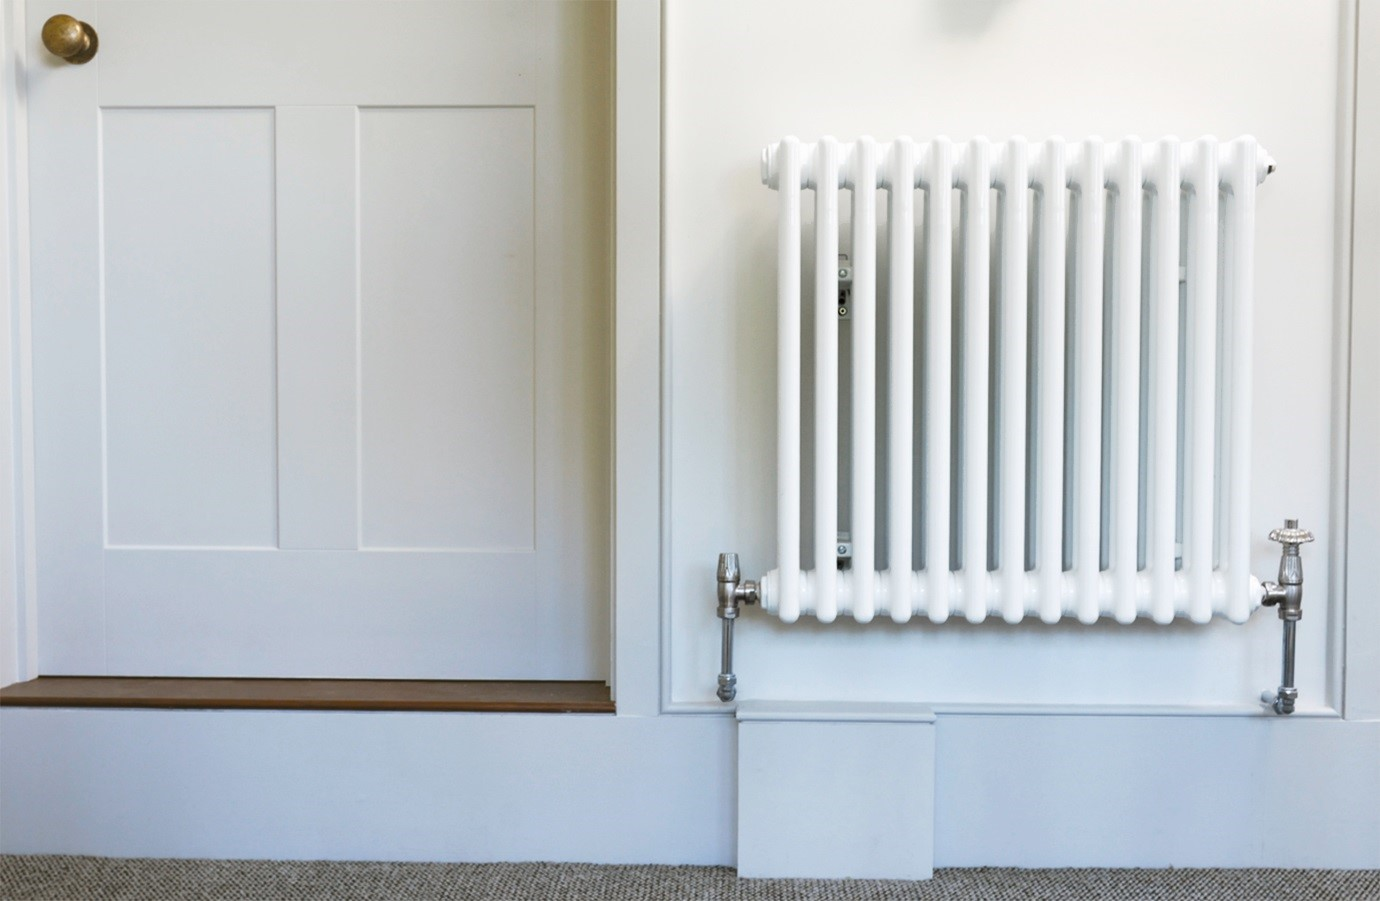 Modern home décor with radiators for each room